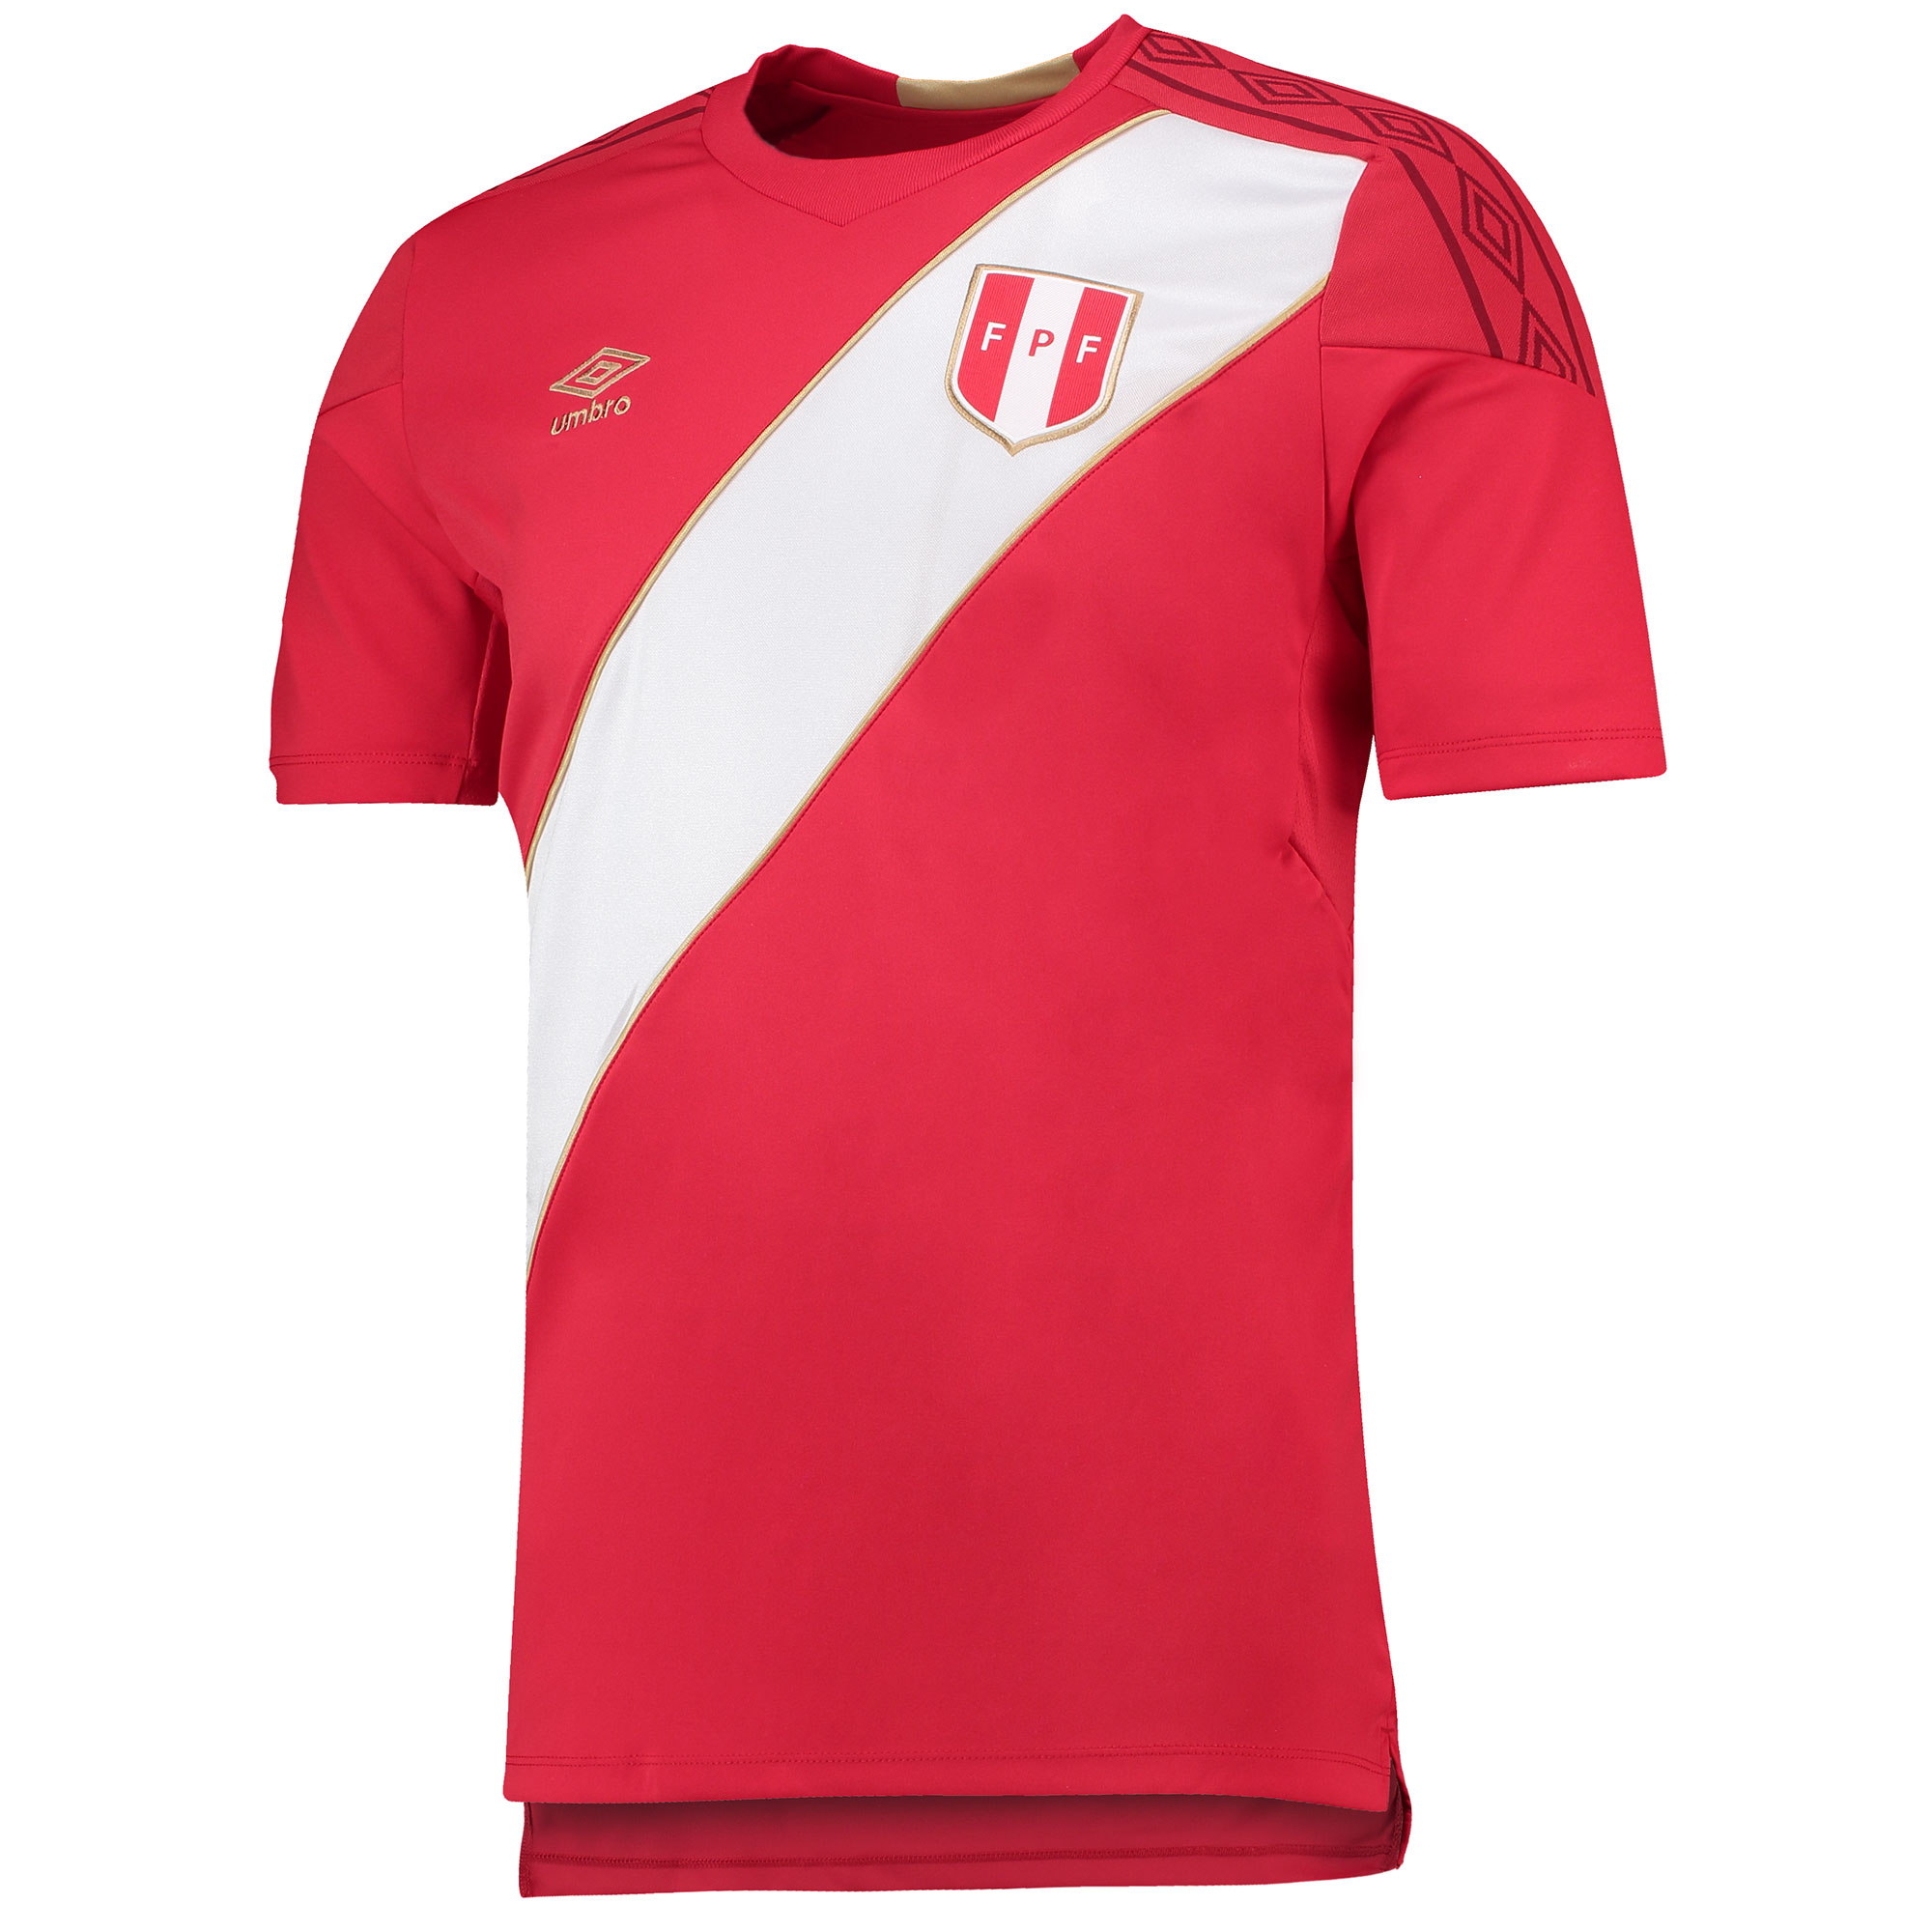 5508efeab ... Peru 2018 World Cup Umbro Home Kit · Click to enlarge image  peru 2018 world cup umbro away kit 1.jpg ...